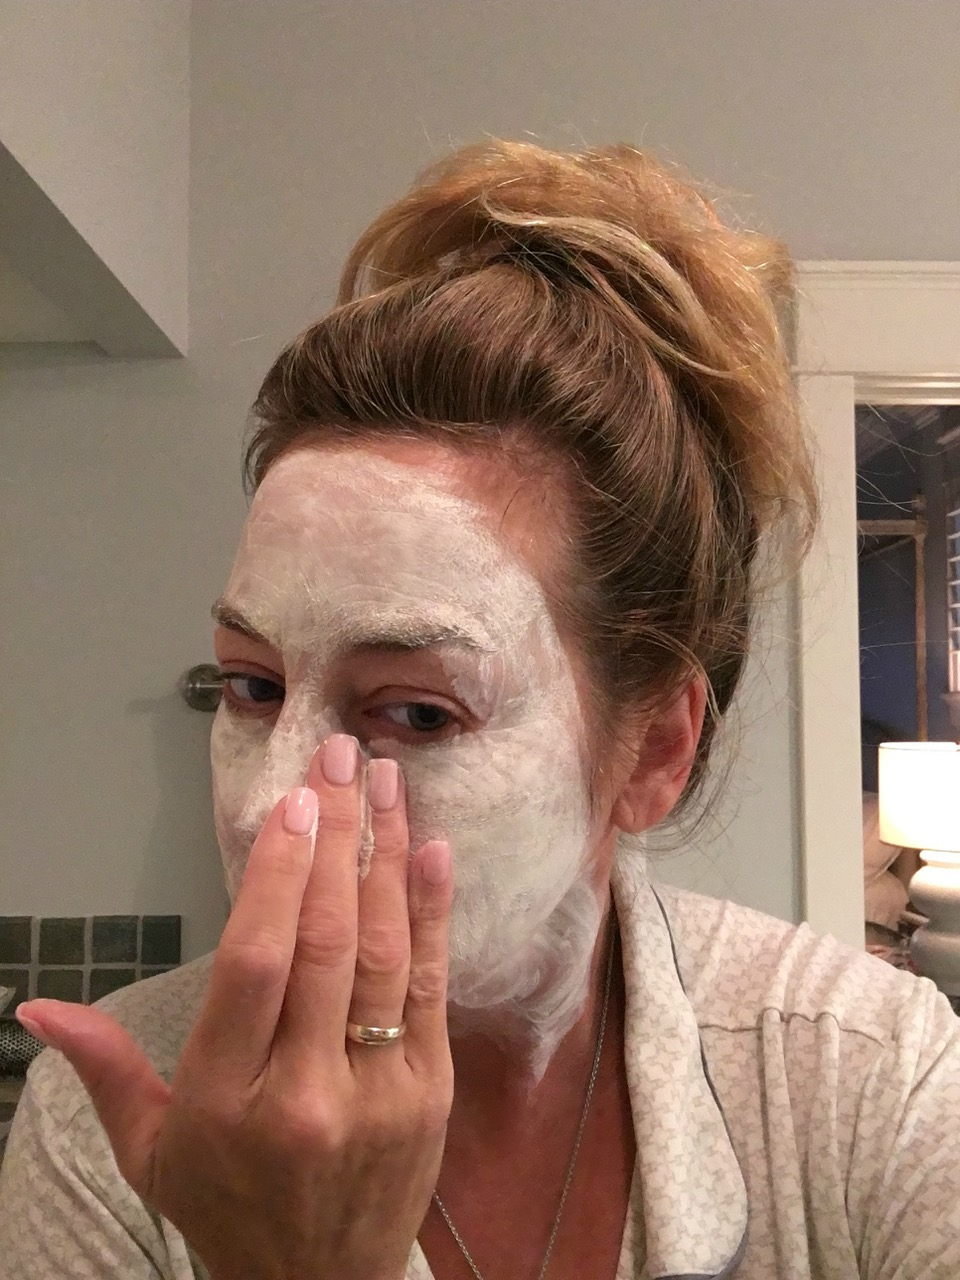 #SkinBabe Gwendolyn Rogers does a moisture mask at least once a week to keep her skin hydrated!